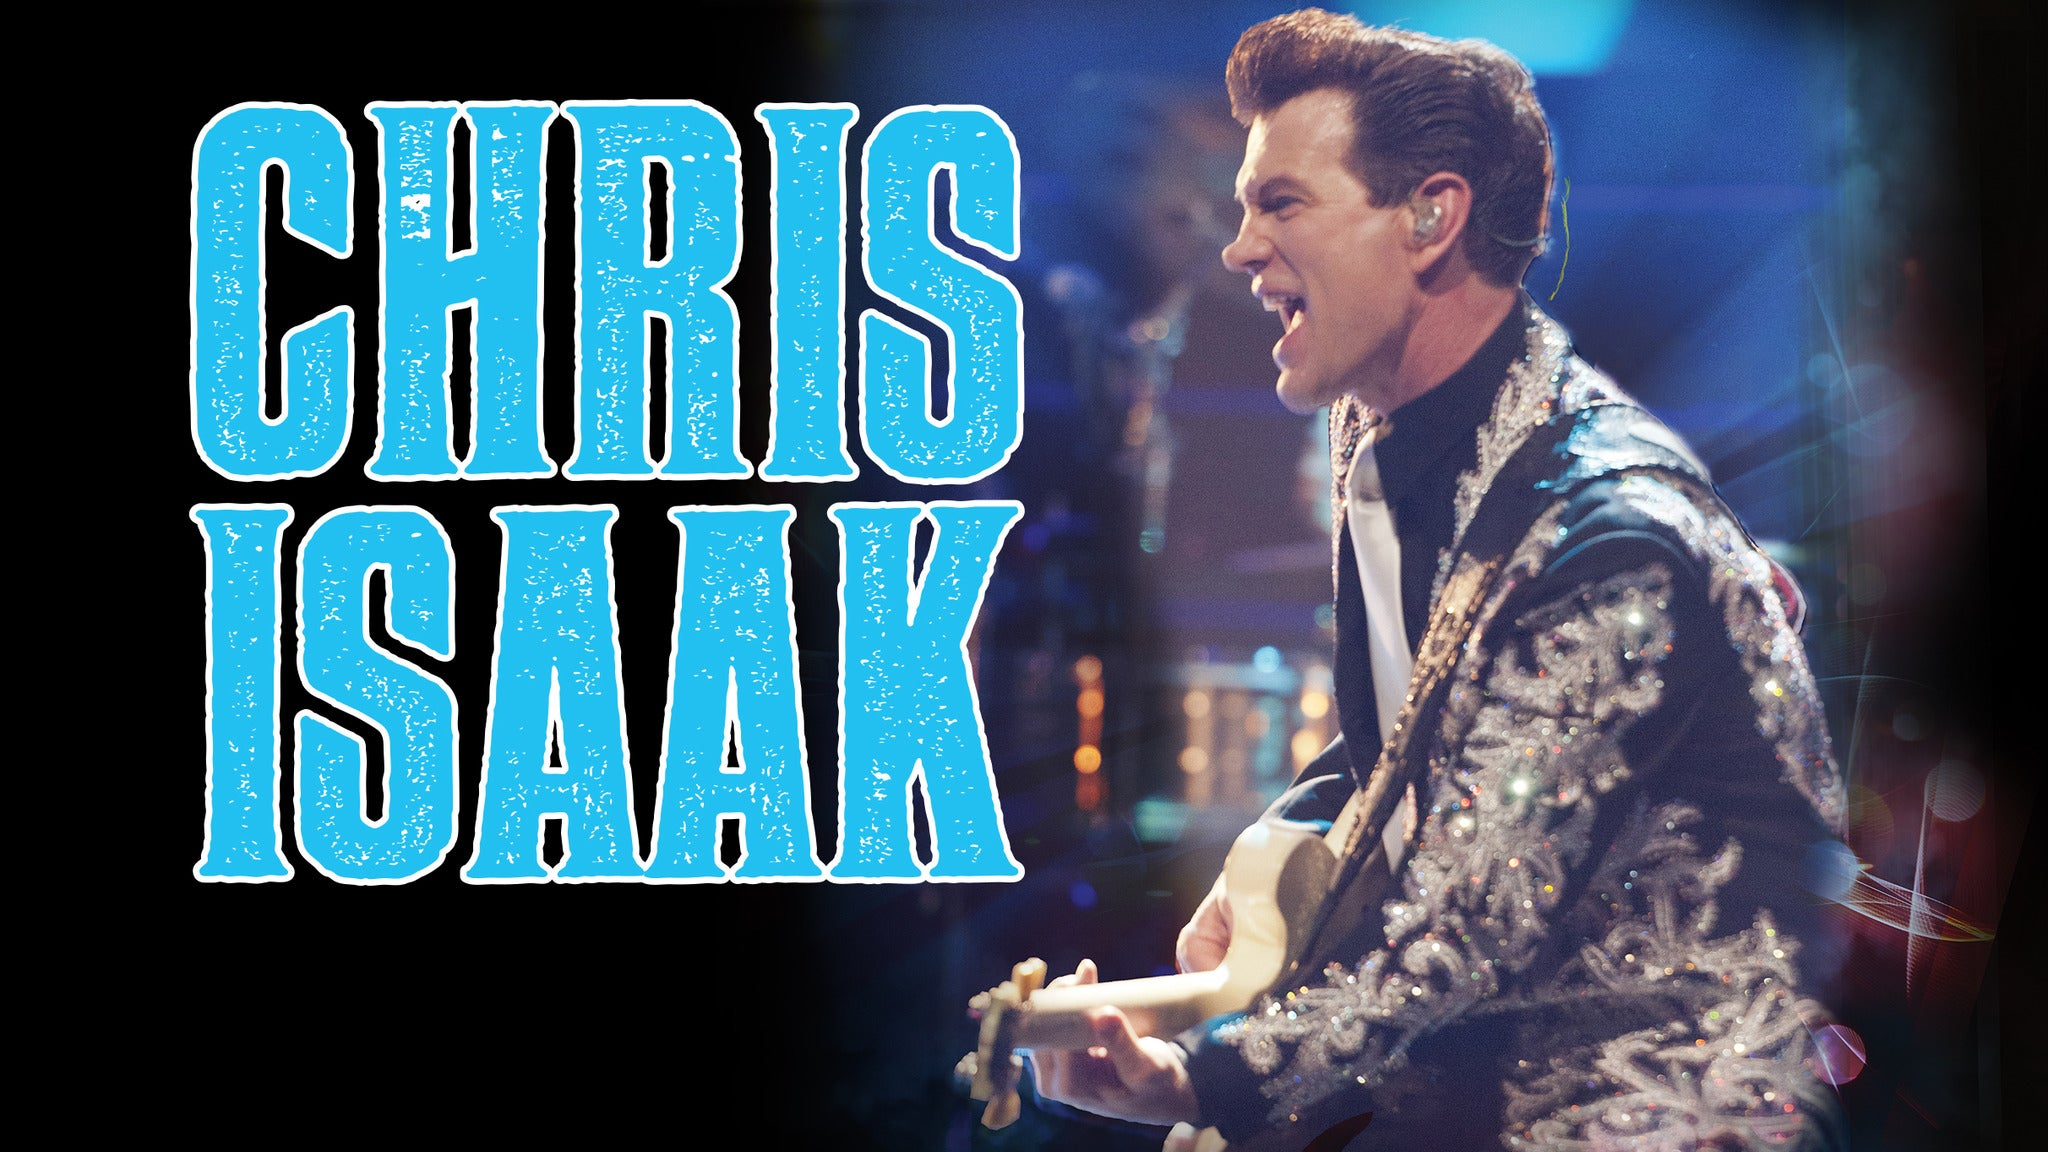 Chris Isaak - Meet & Greet Packages at Fox Tucson Theatre